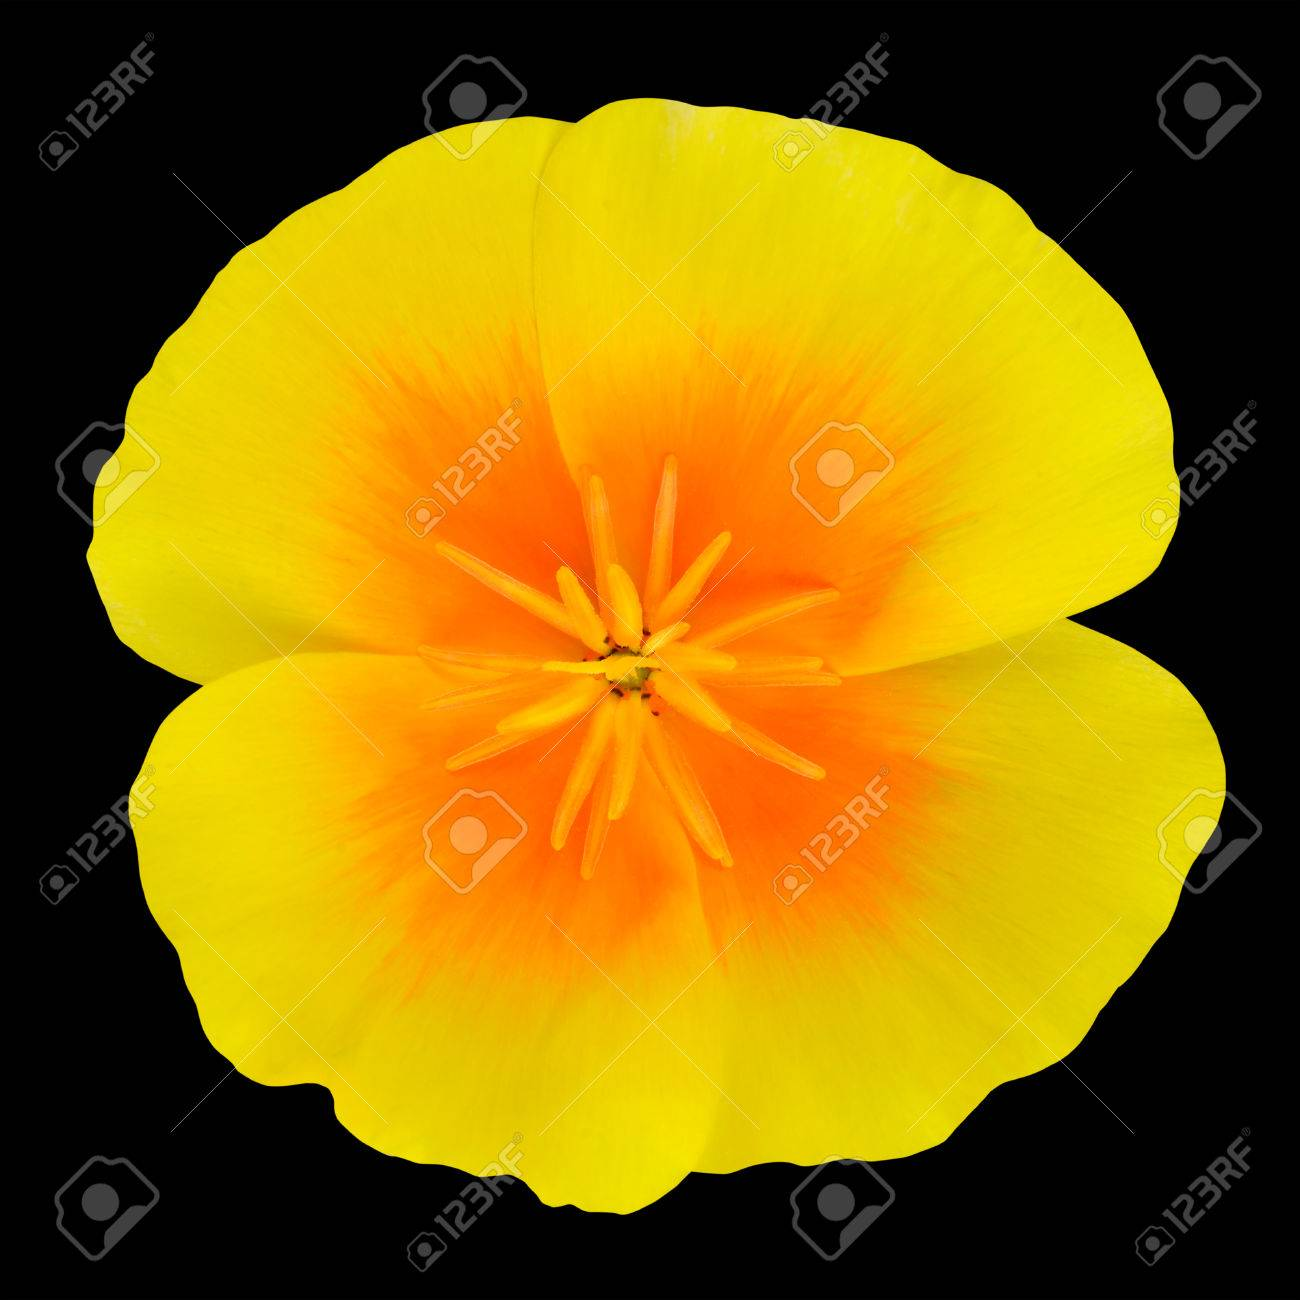 Yellow Wildflower Flower With Orange Center Isolated On Black